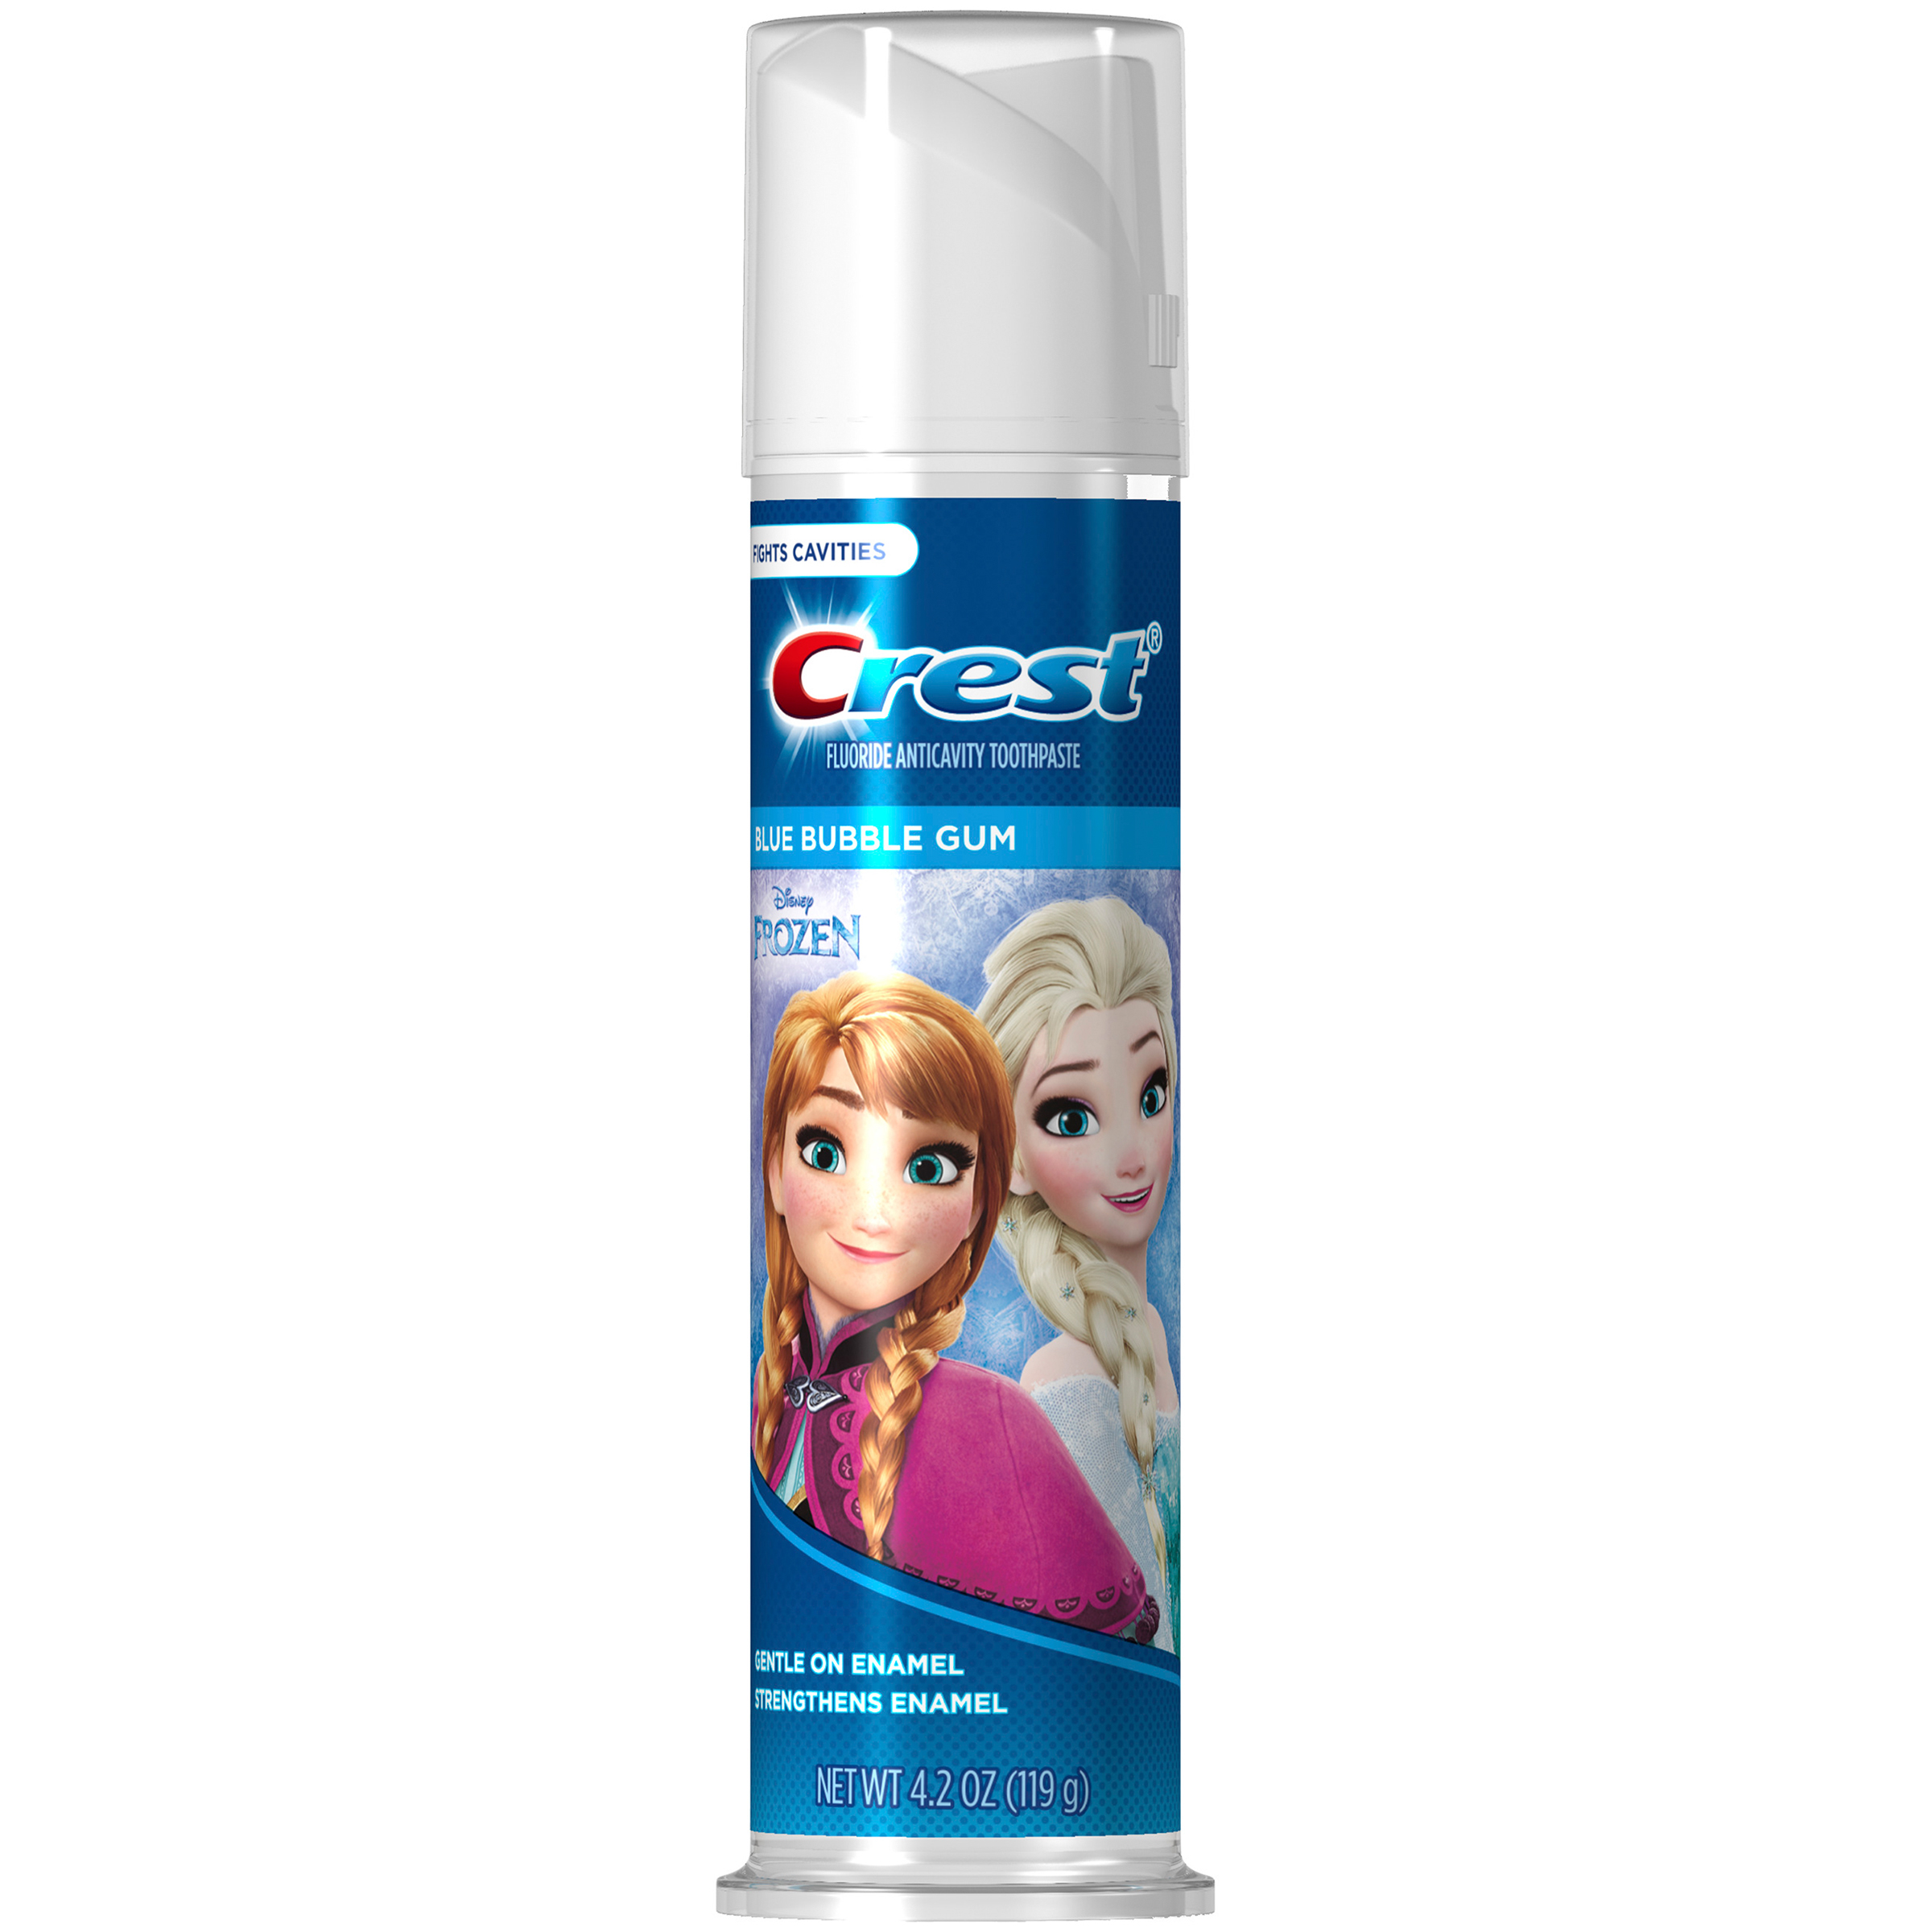 (2 pack) Crest Kid's Cavity Protection Toothpaste (for Kids and Toddlers 2+) Featuring Disney's Frozen, Blue Bubble Gum, 4.2 Ounce